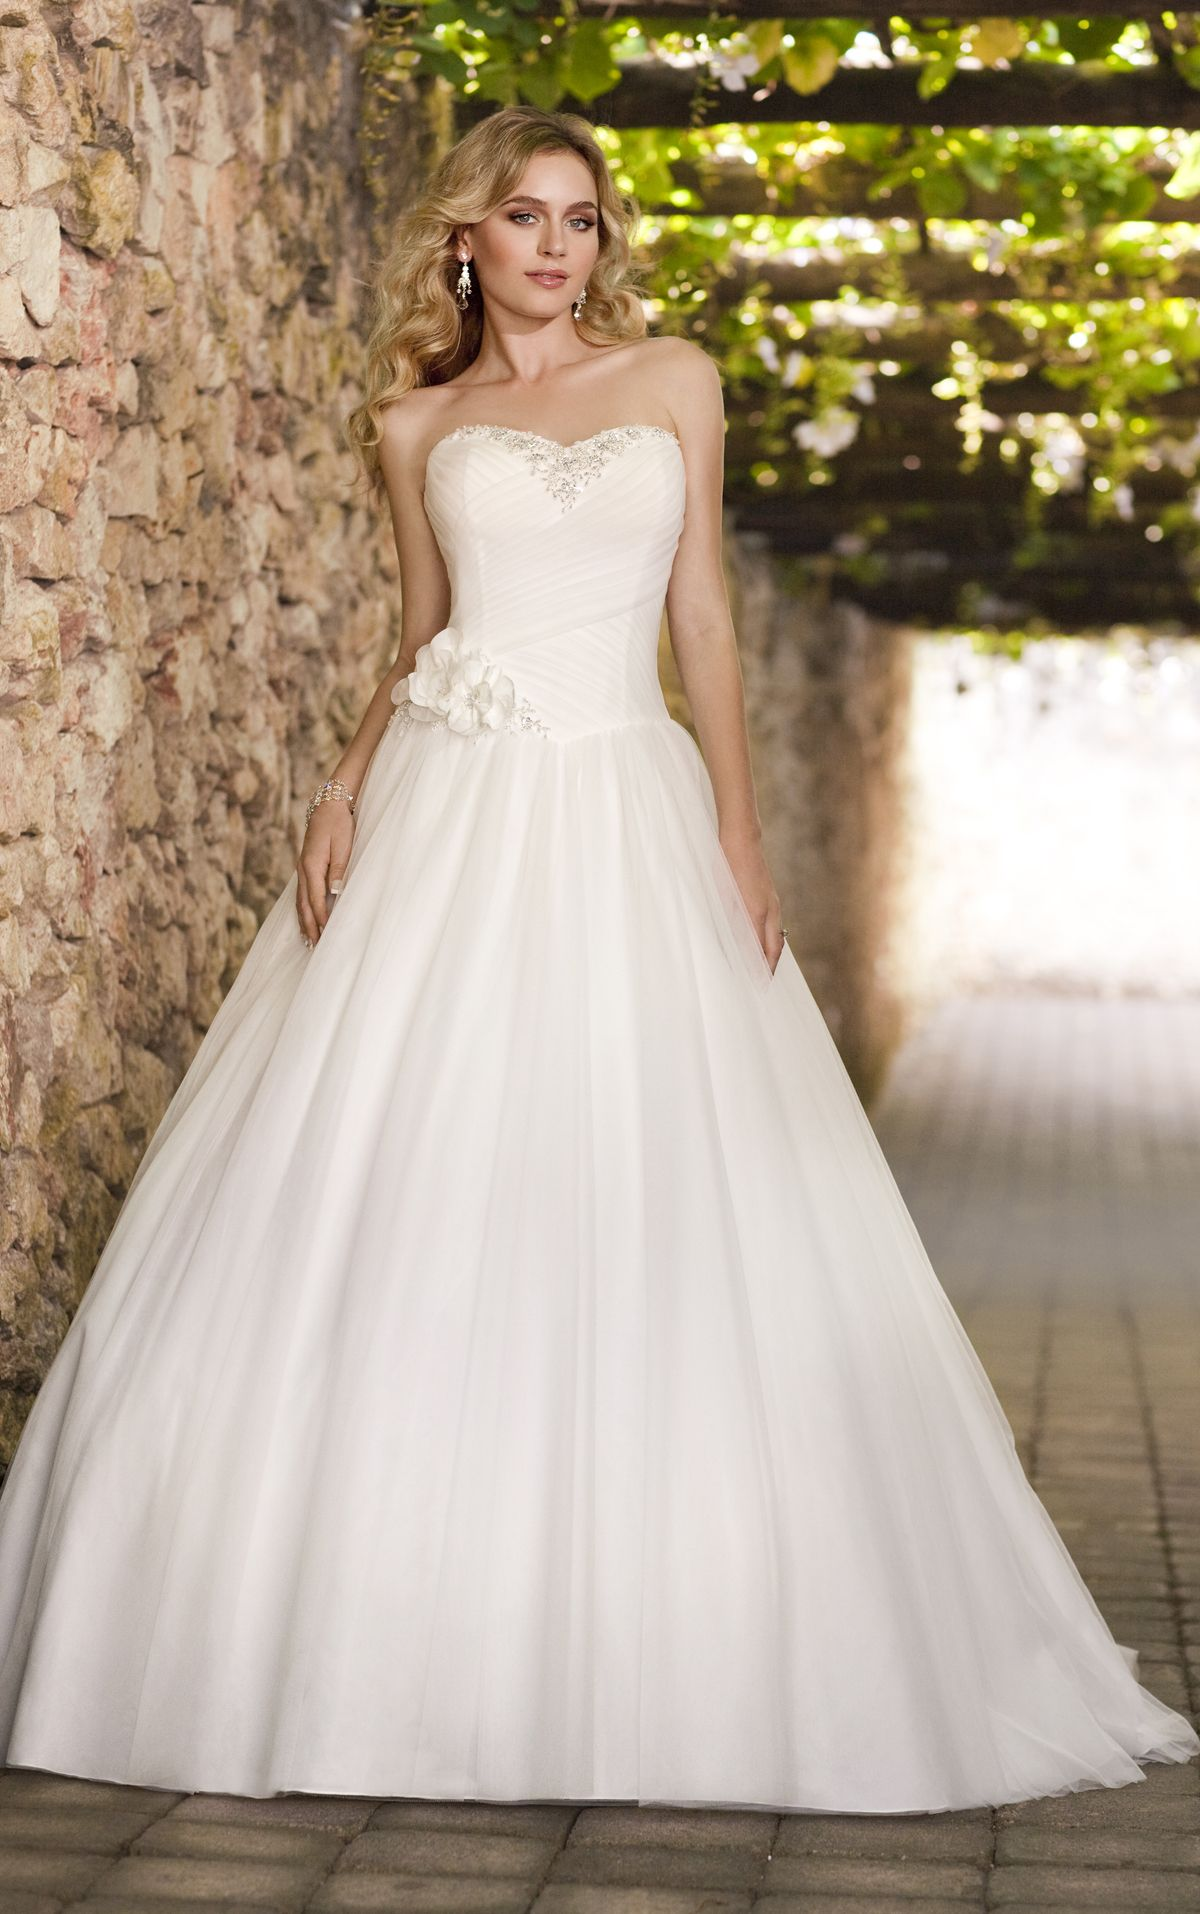 Stella york dress wedding dresses pinterest stella york